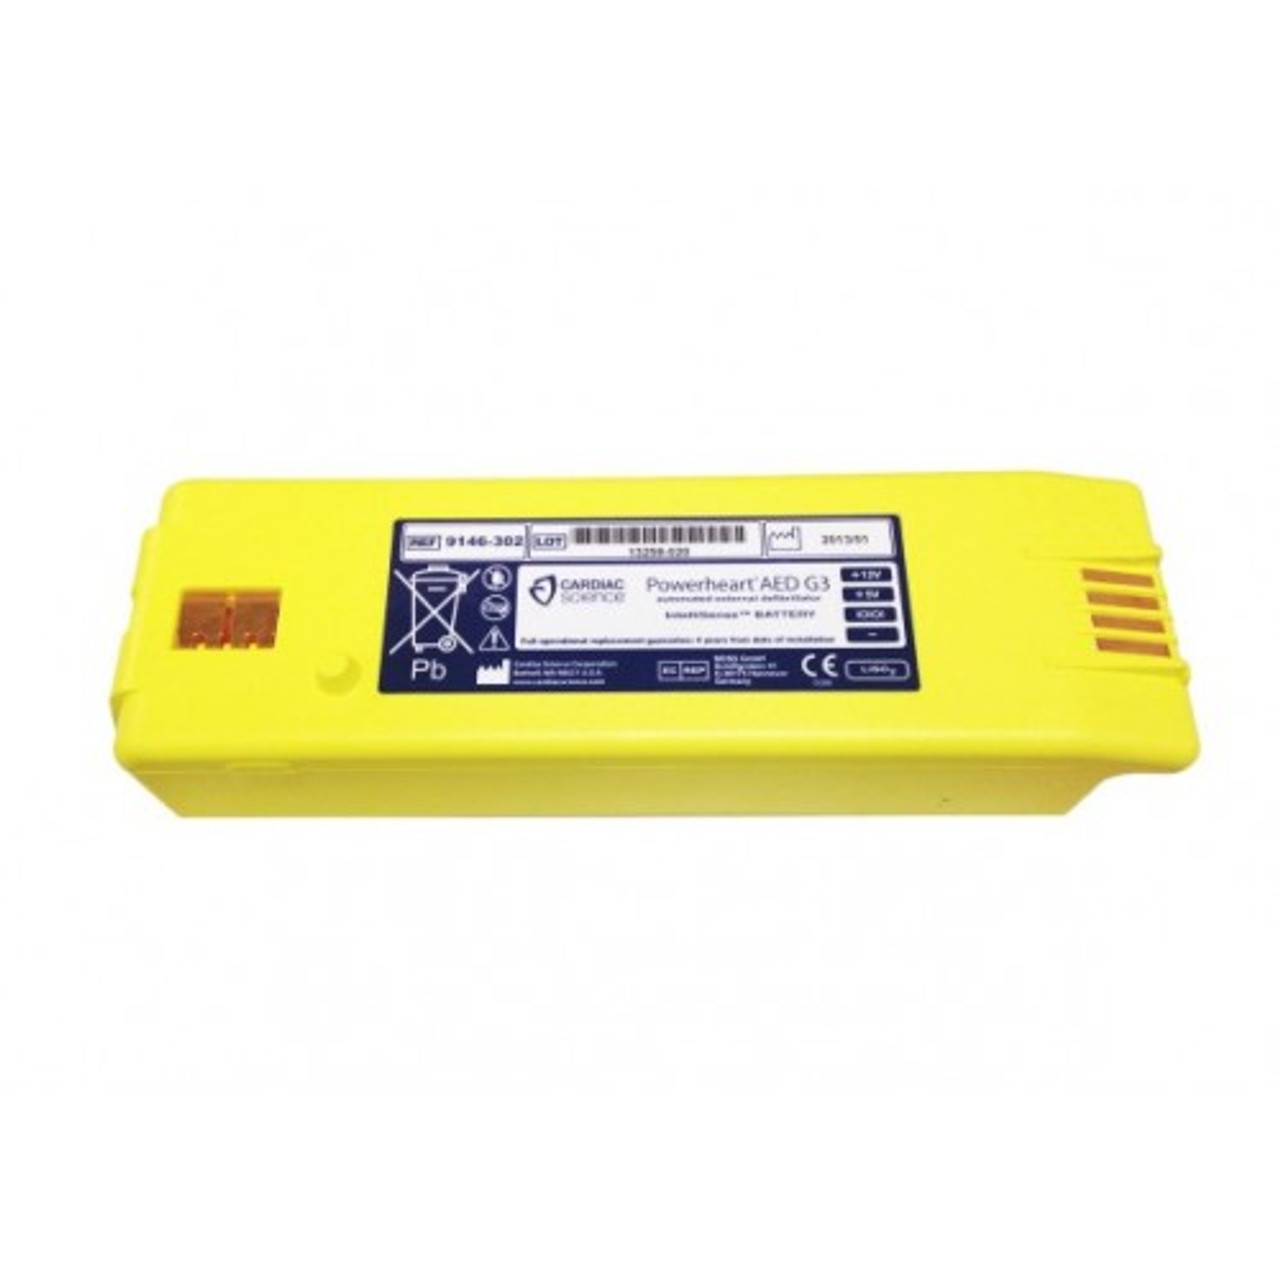 Powerheart G3 AED IntelliSense Battery